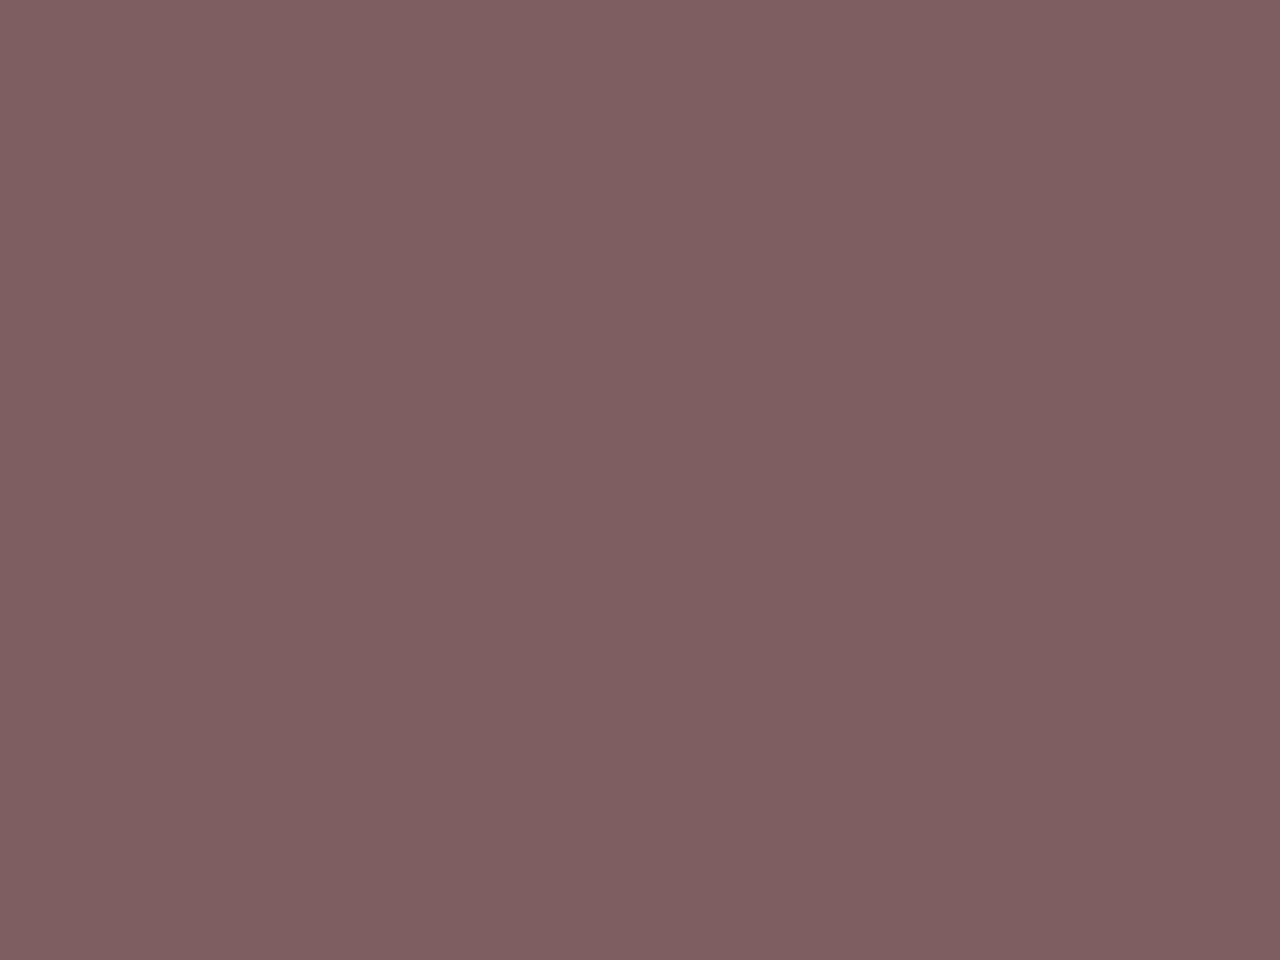 1280x960 Deep Taupe Solid Color Background